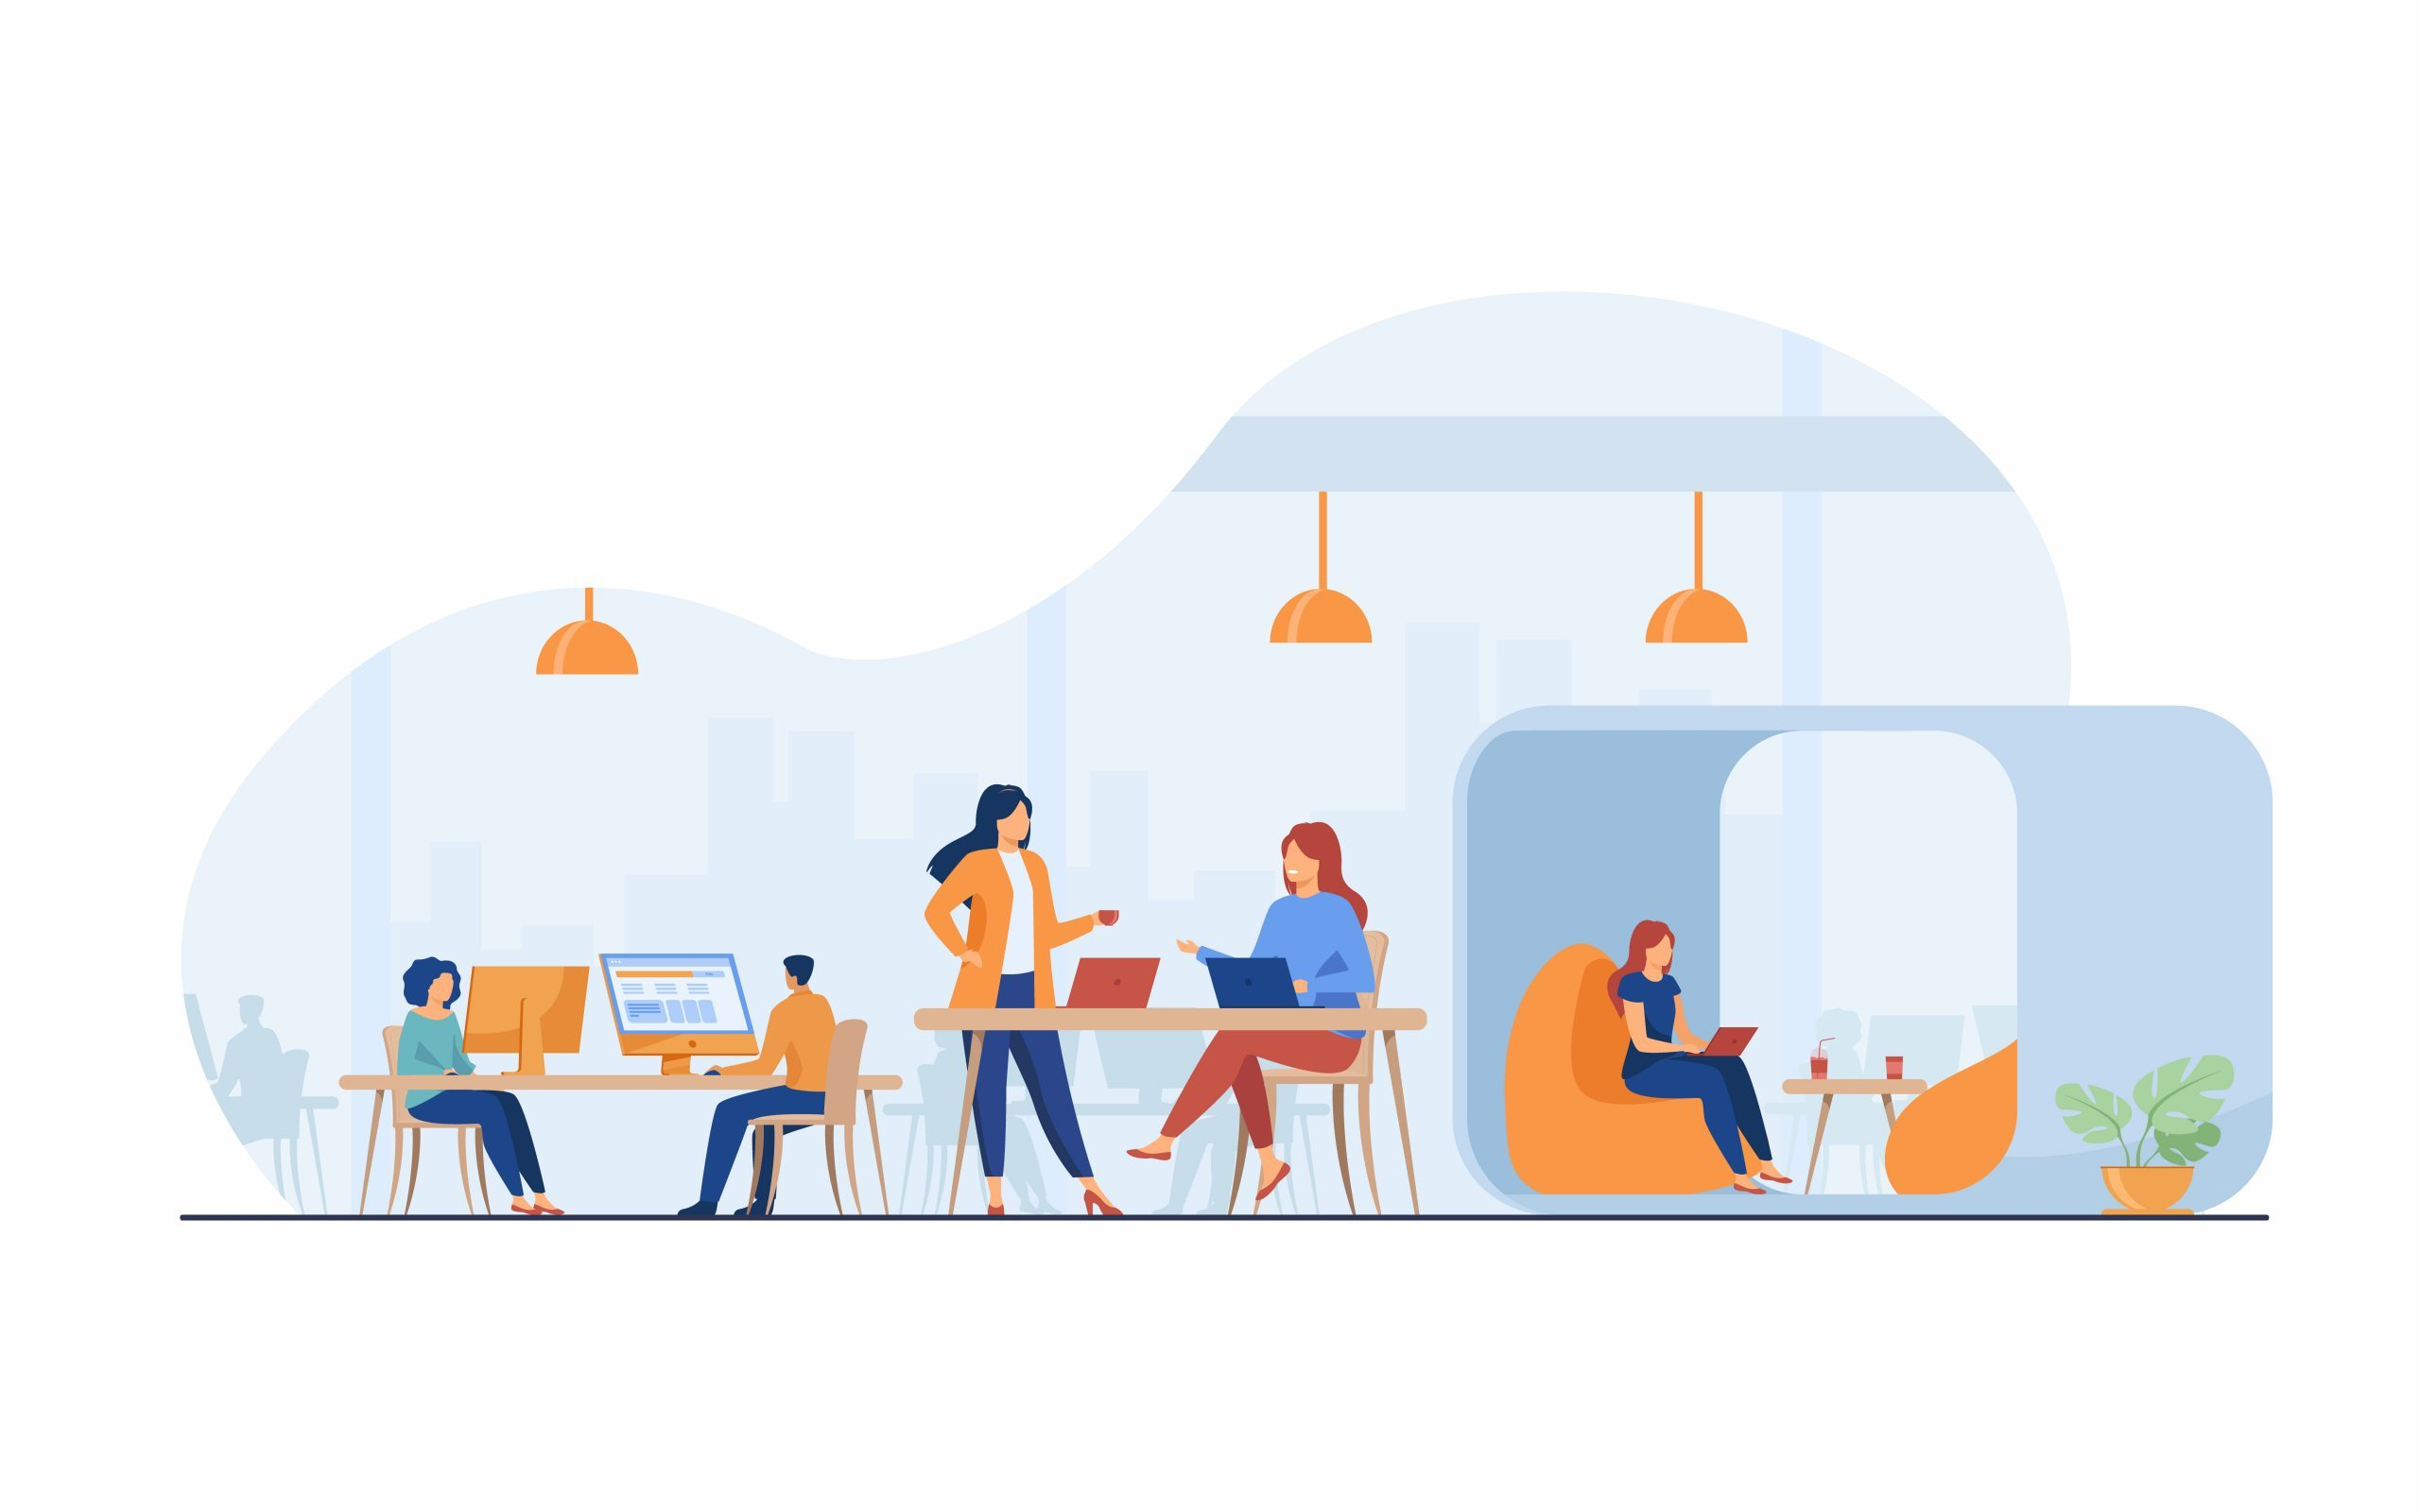 Modern business team working in open office space